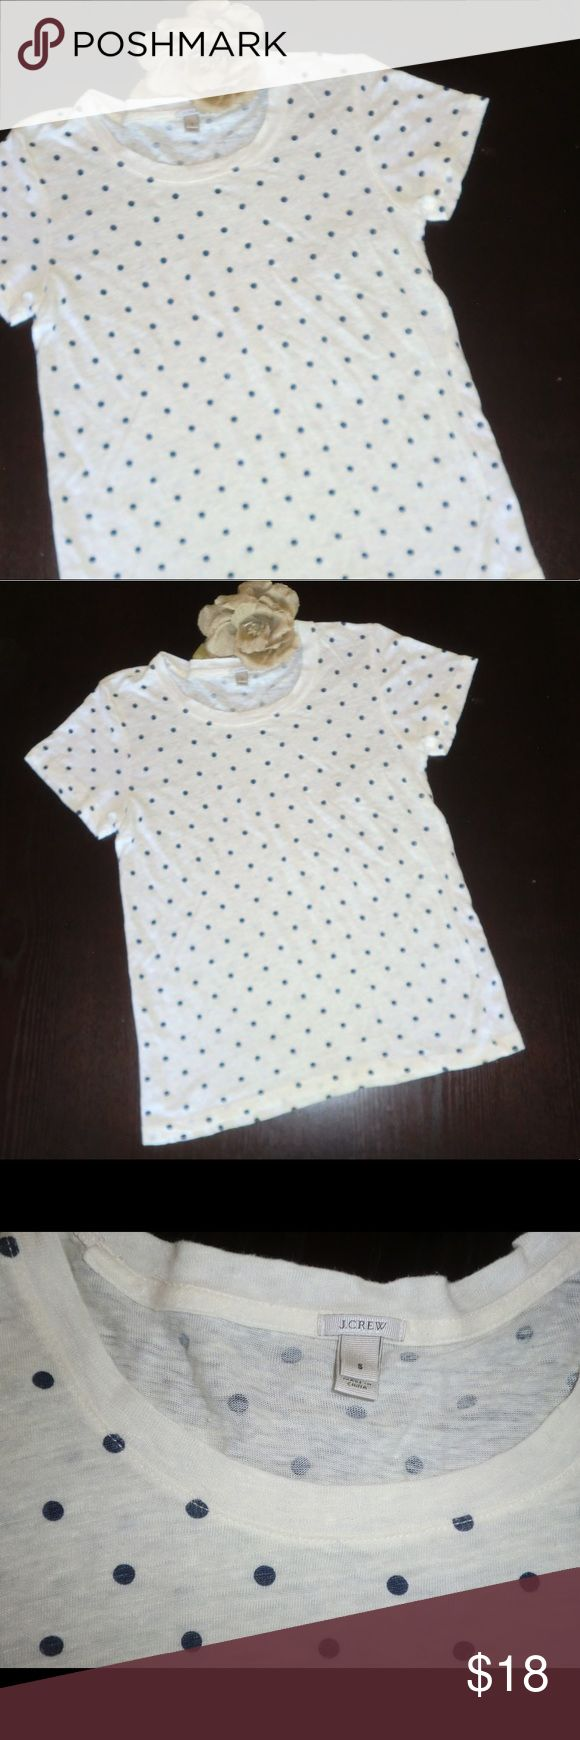 J. Crew Polka Dot Tee Like New S Soft Navy White Nothing like stepping out in a tshirt that feels like you could fall asleep in it! This soft linen tee is a must have for spring and summer. White with navy blue polka dots. Size small. J. Crew Tops Tees - Short Sleeve